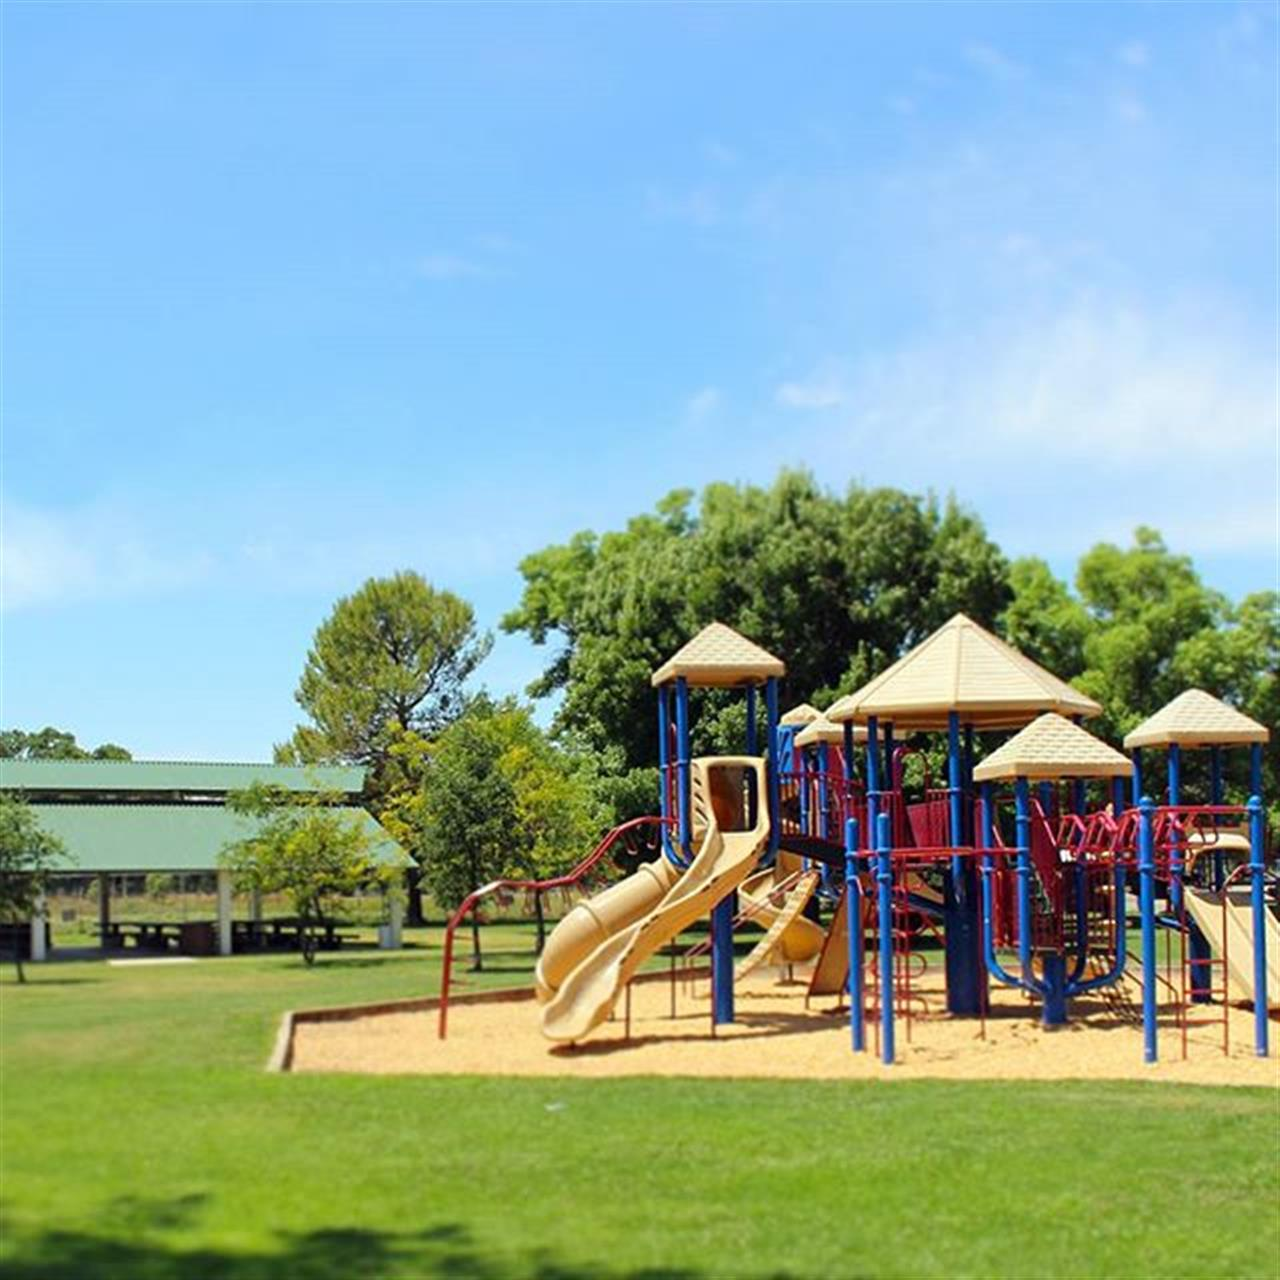 Family friendly parks located in #orangevale. #lyonrealestate #leadingrelocal #parks